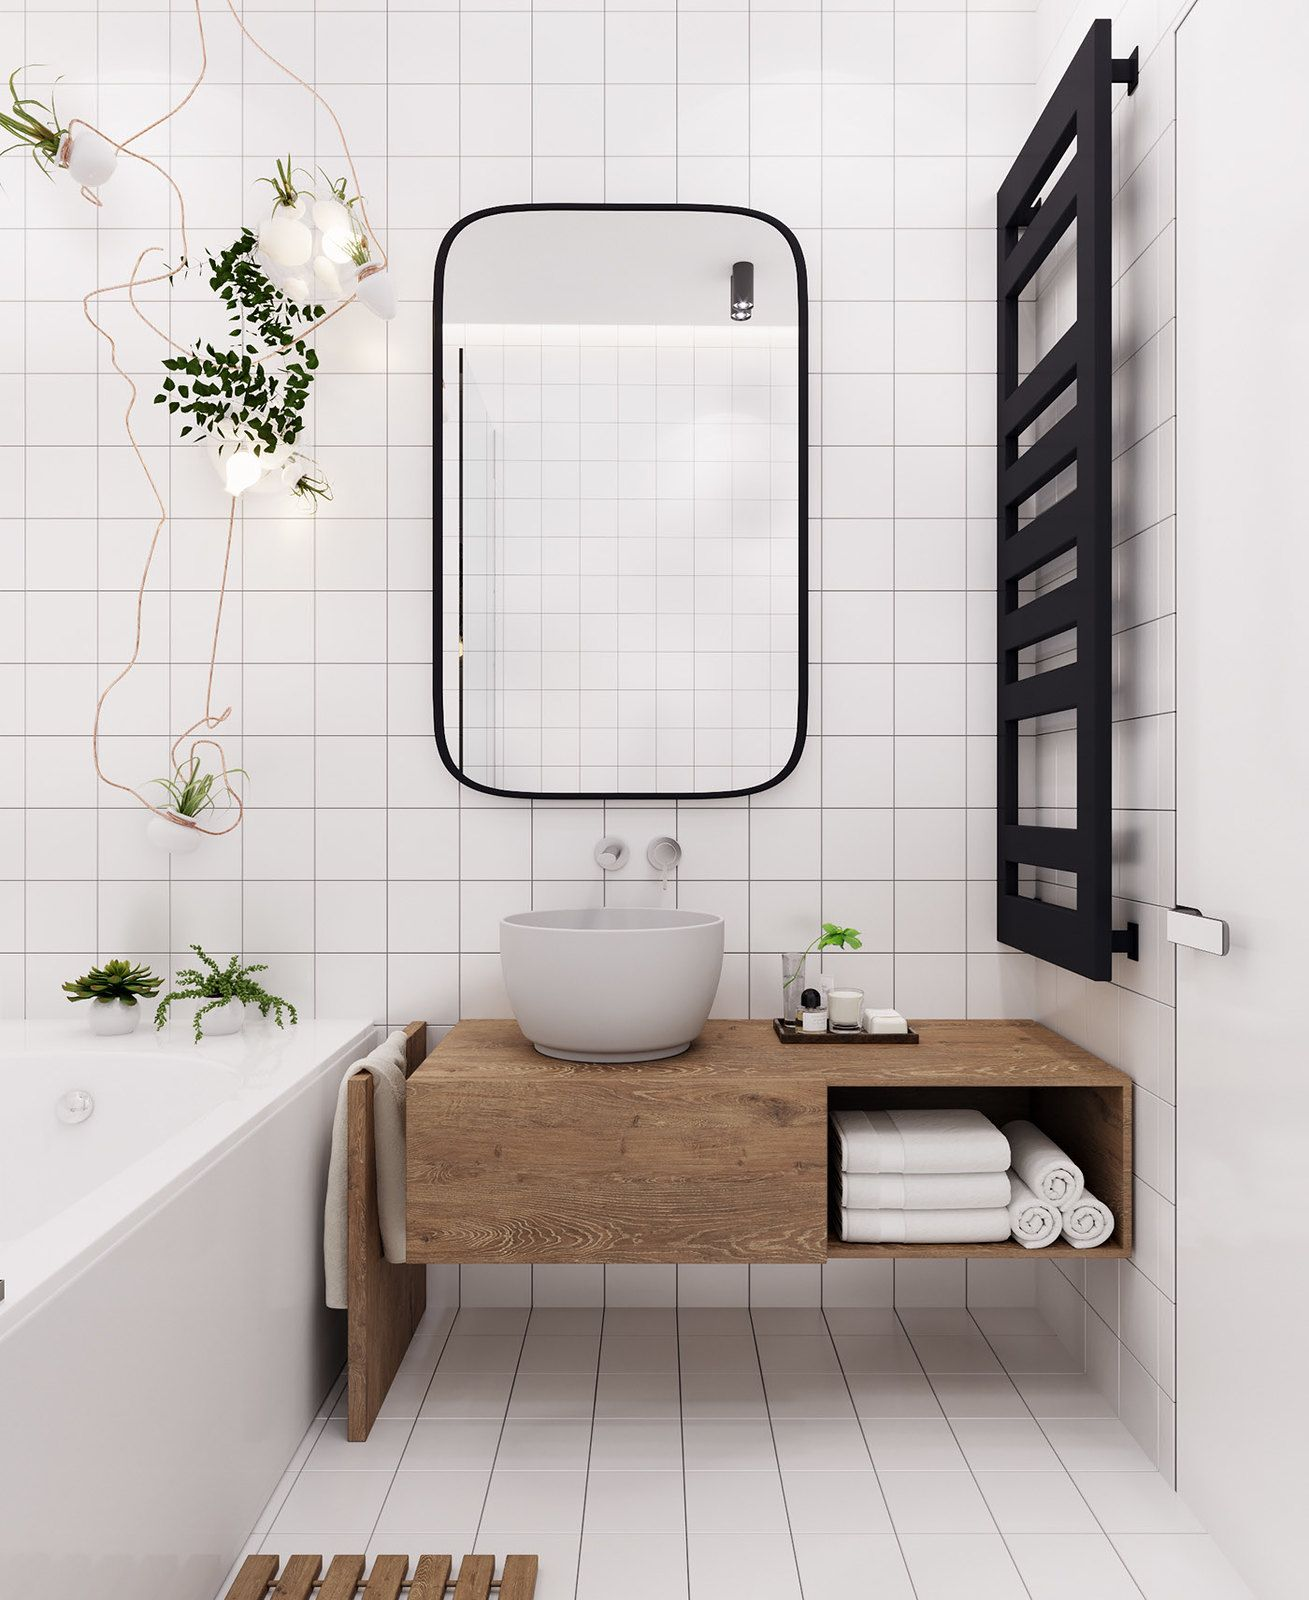 12 Small Bathrooms That Inspired My Renovation Living After Midnite Simple Bathroom Small Bathroom Minimalist Bathroom Simple interior bathroom design